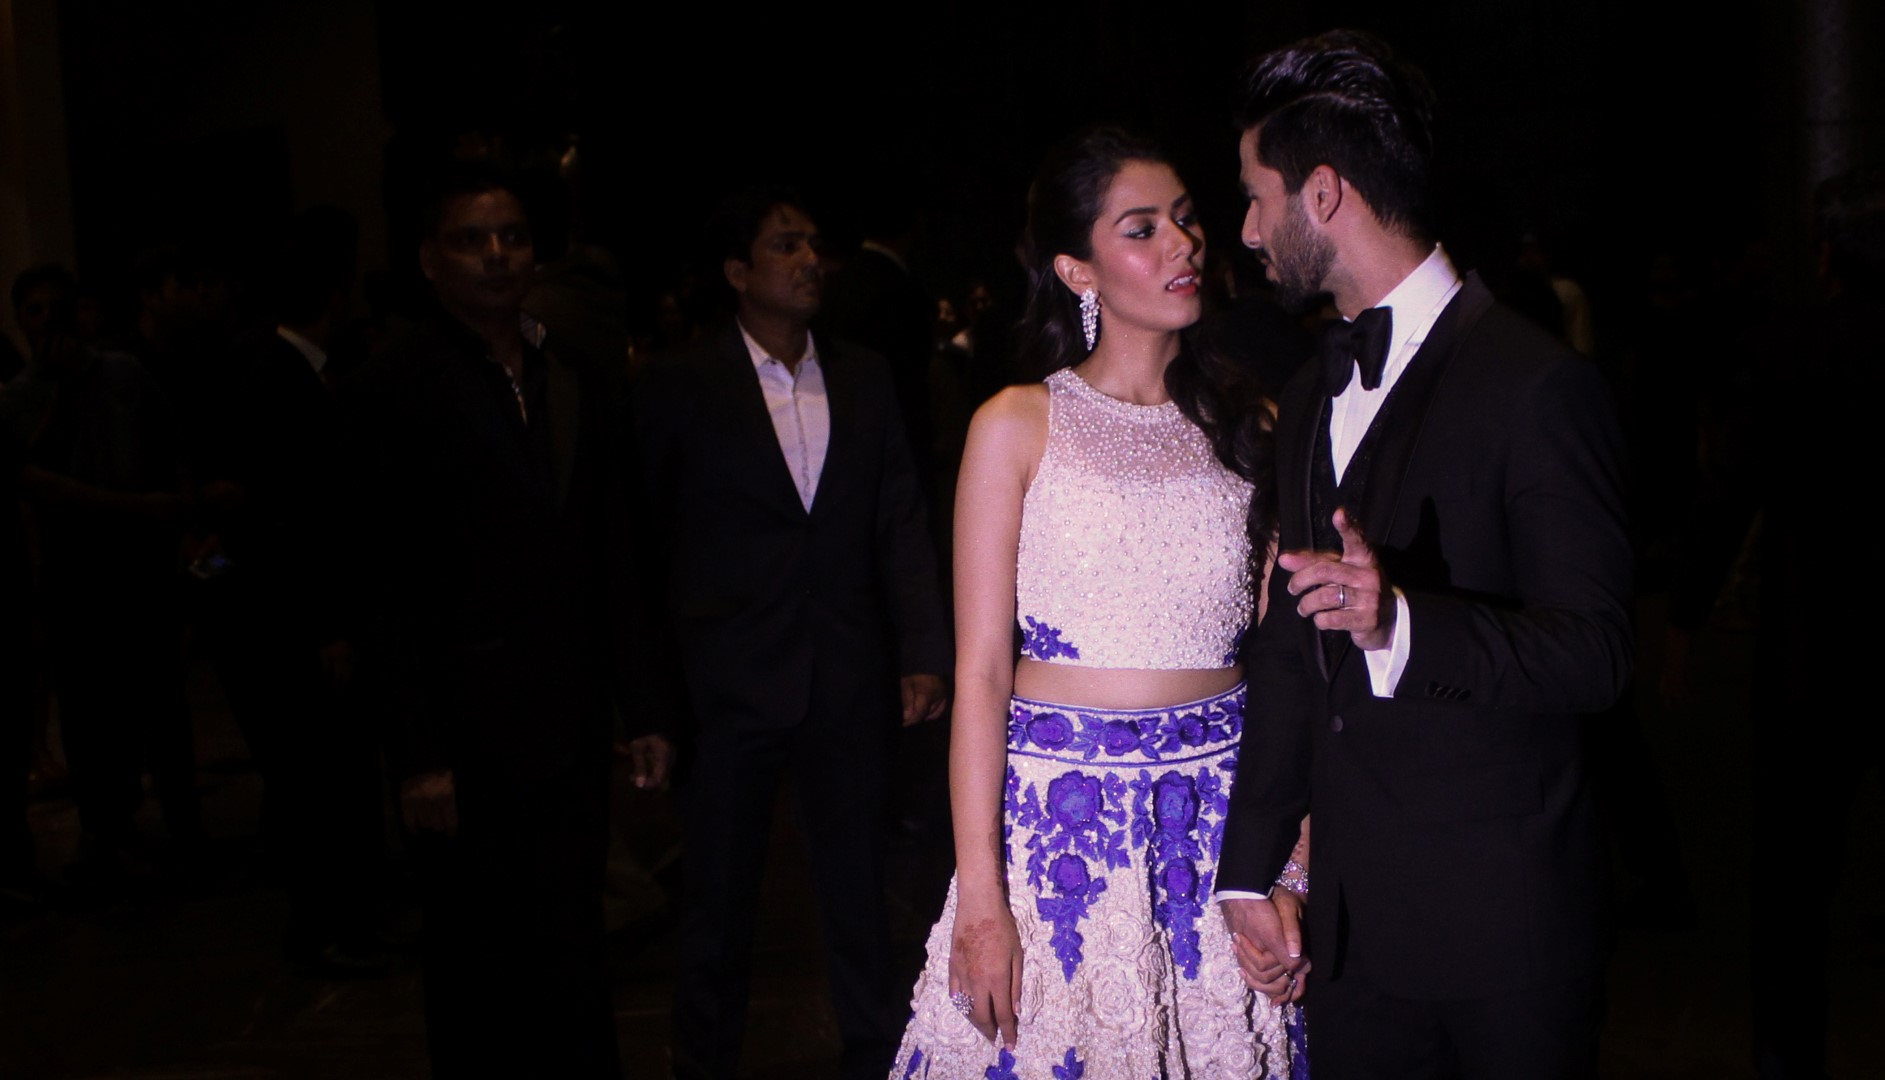 Shahid Kapoor With Wife Mira Rajput At Their Wedding Reception